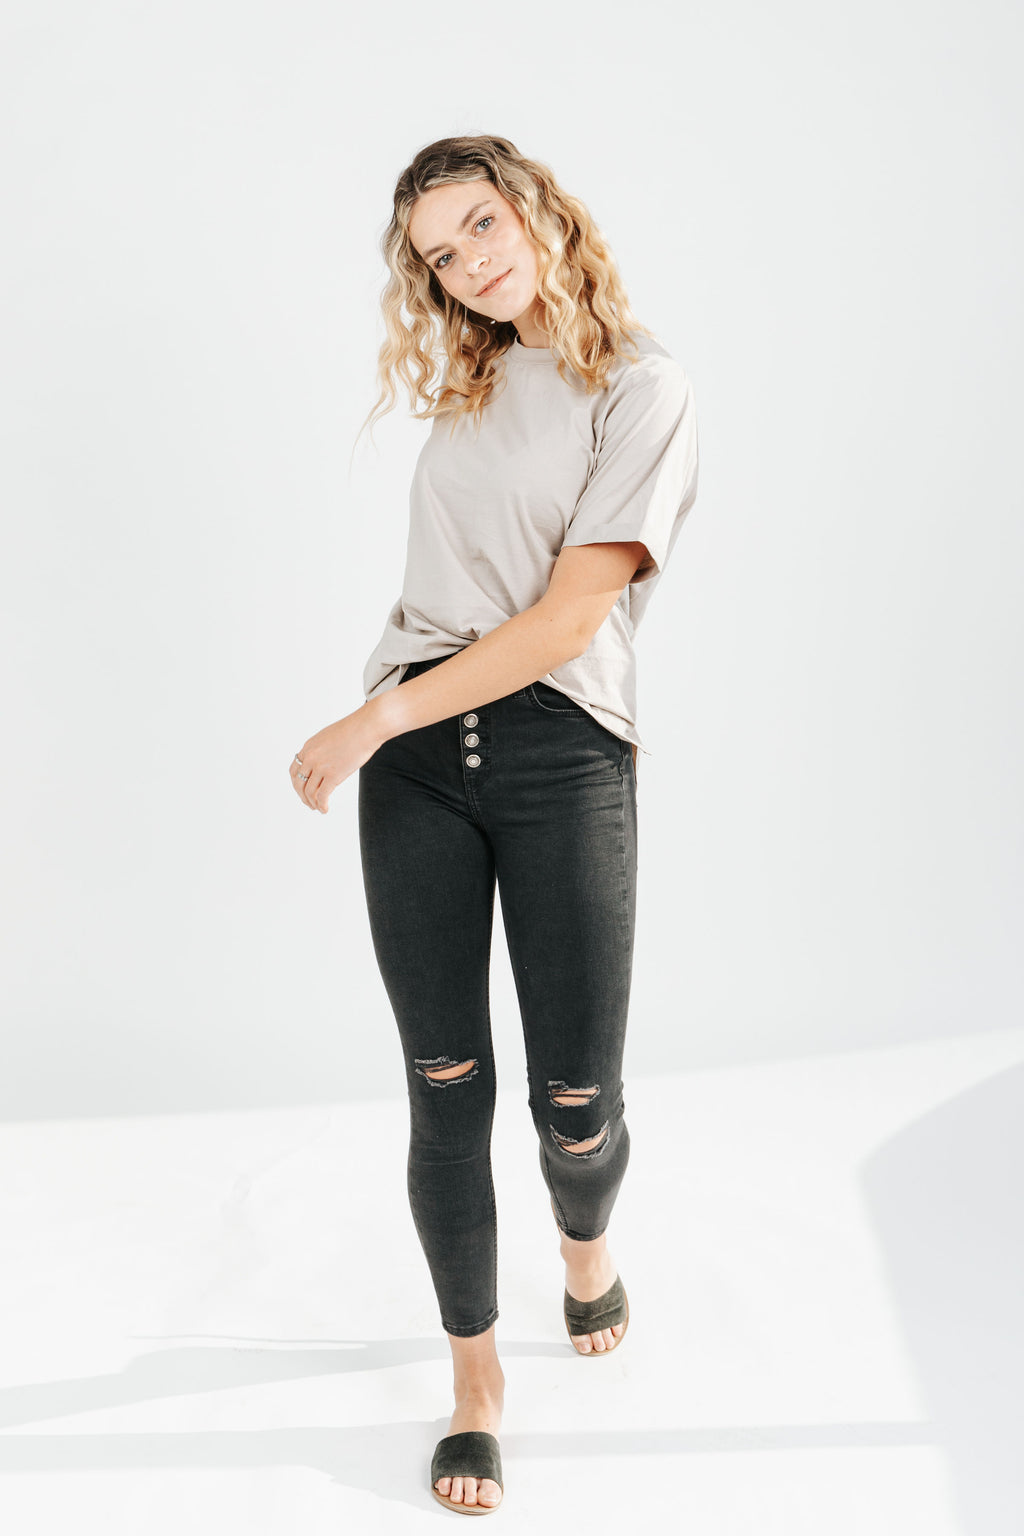 Free People: Sabrina Super Skinny Jean in Black, studio shoot; front view